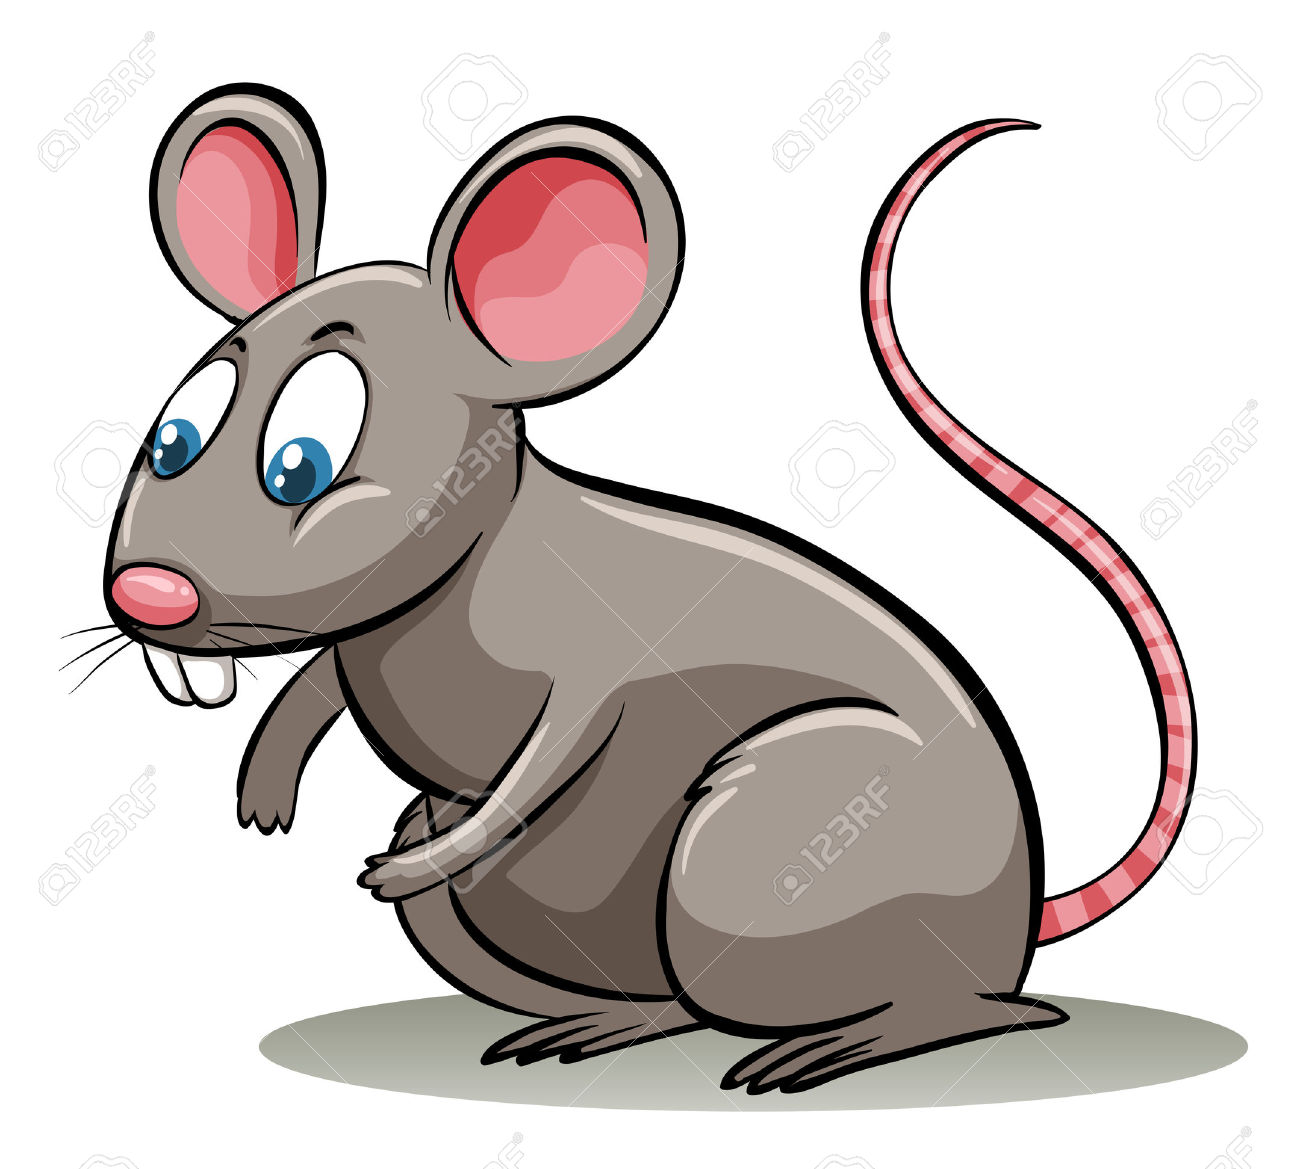 Lion clipart rat #12